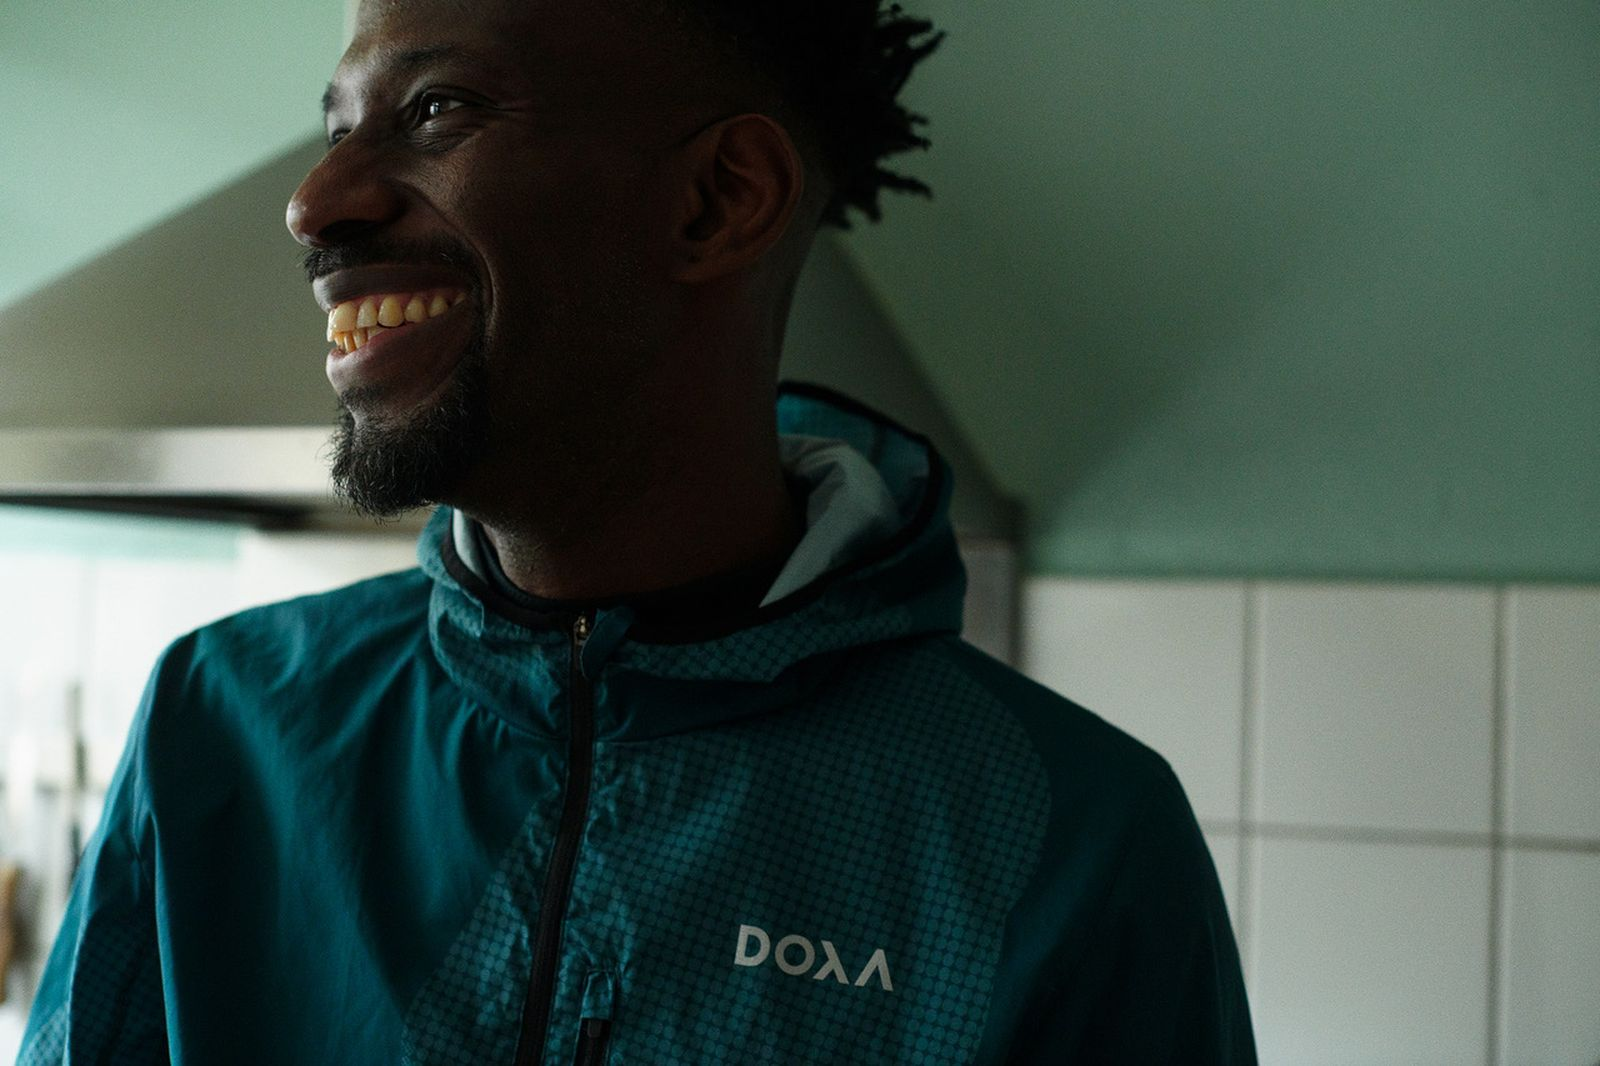 DOXA's FW19 collection